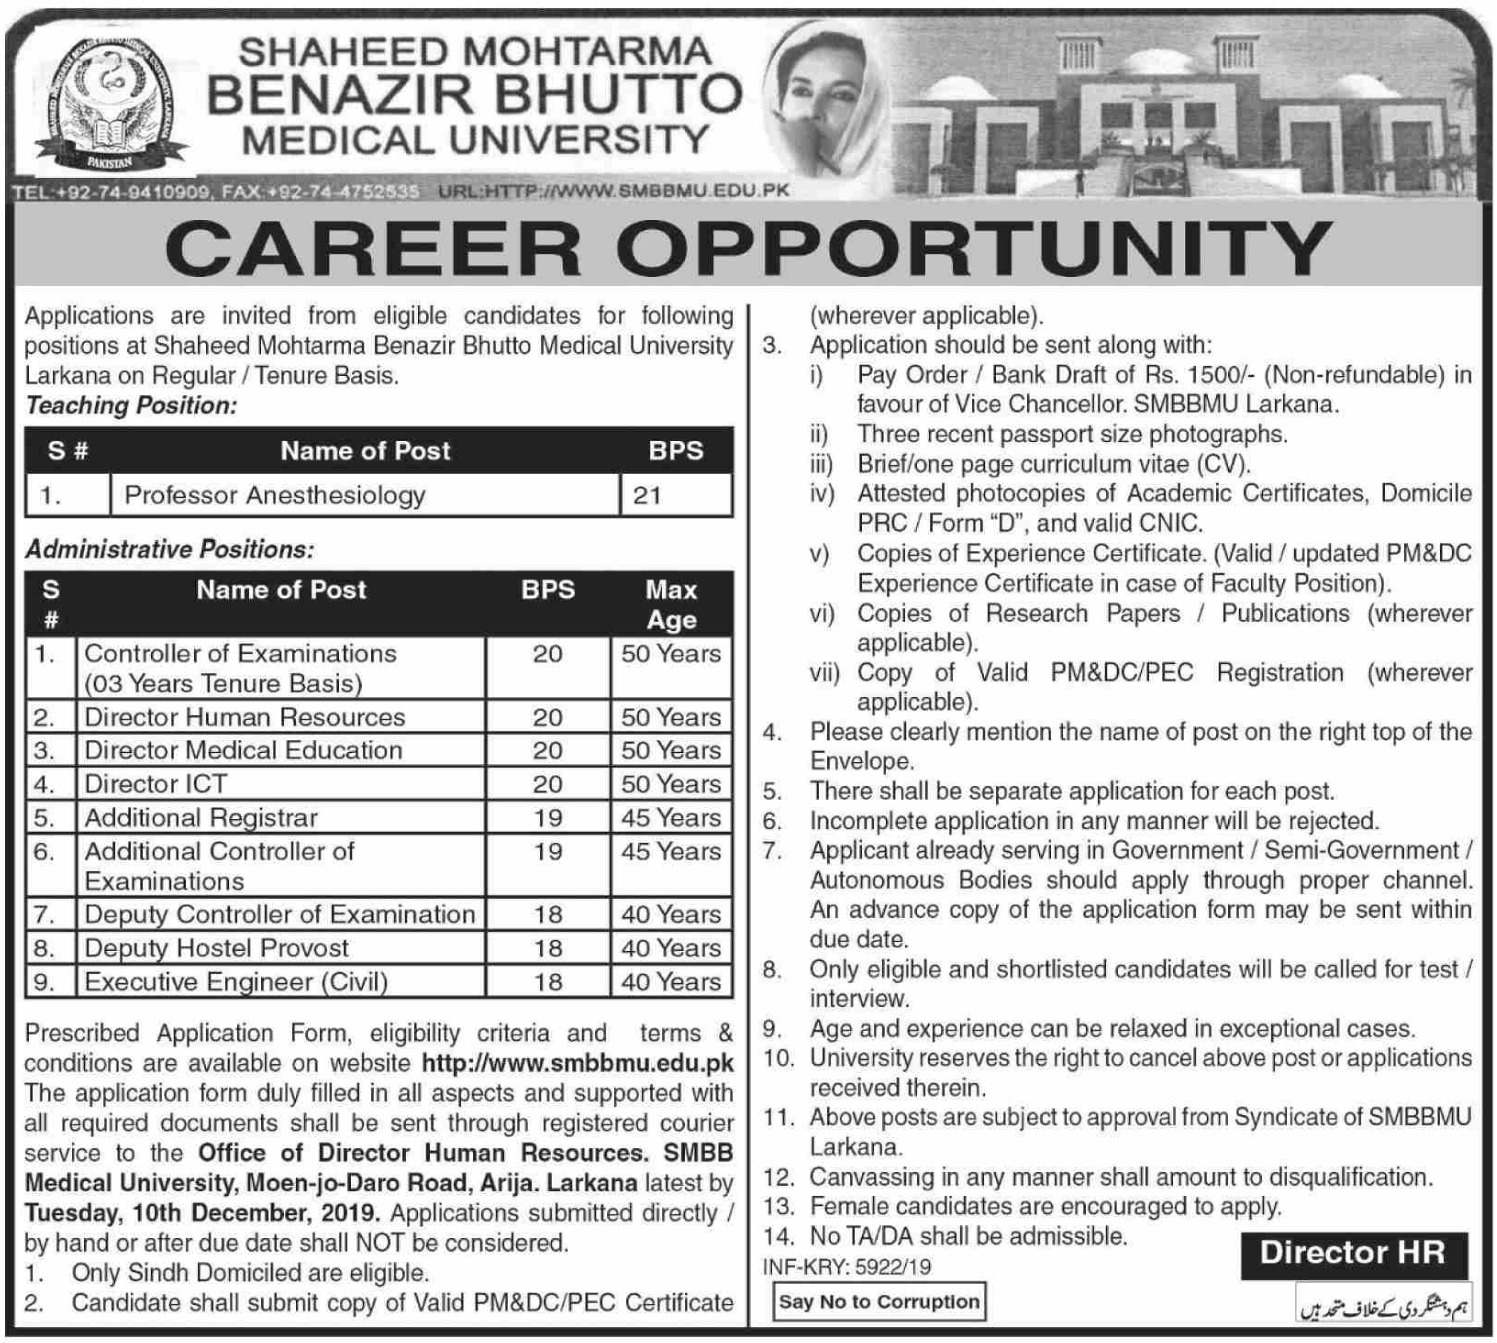 Shaheed Mohtarma Benazir Bhutto Medical University SMBBMU Larkana Jobs 2019